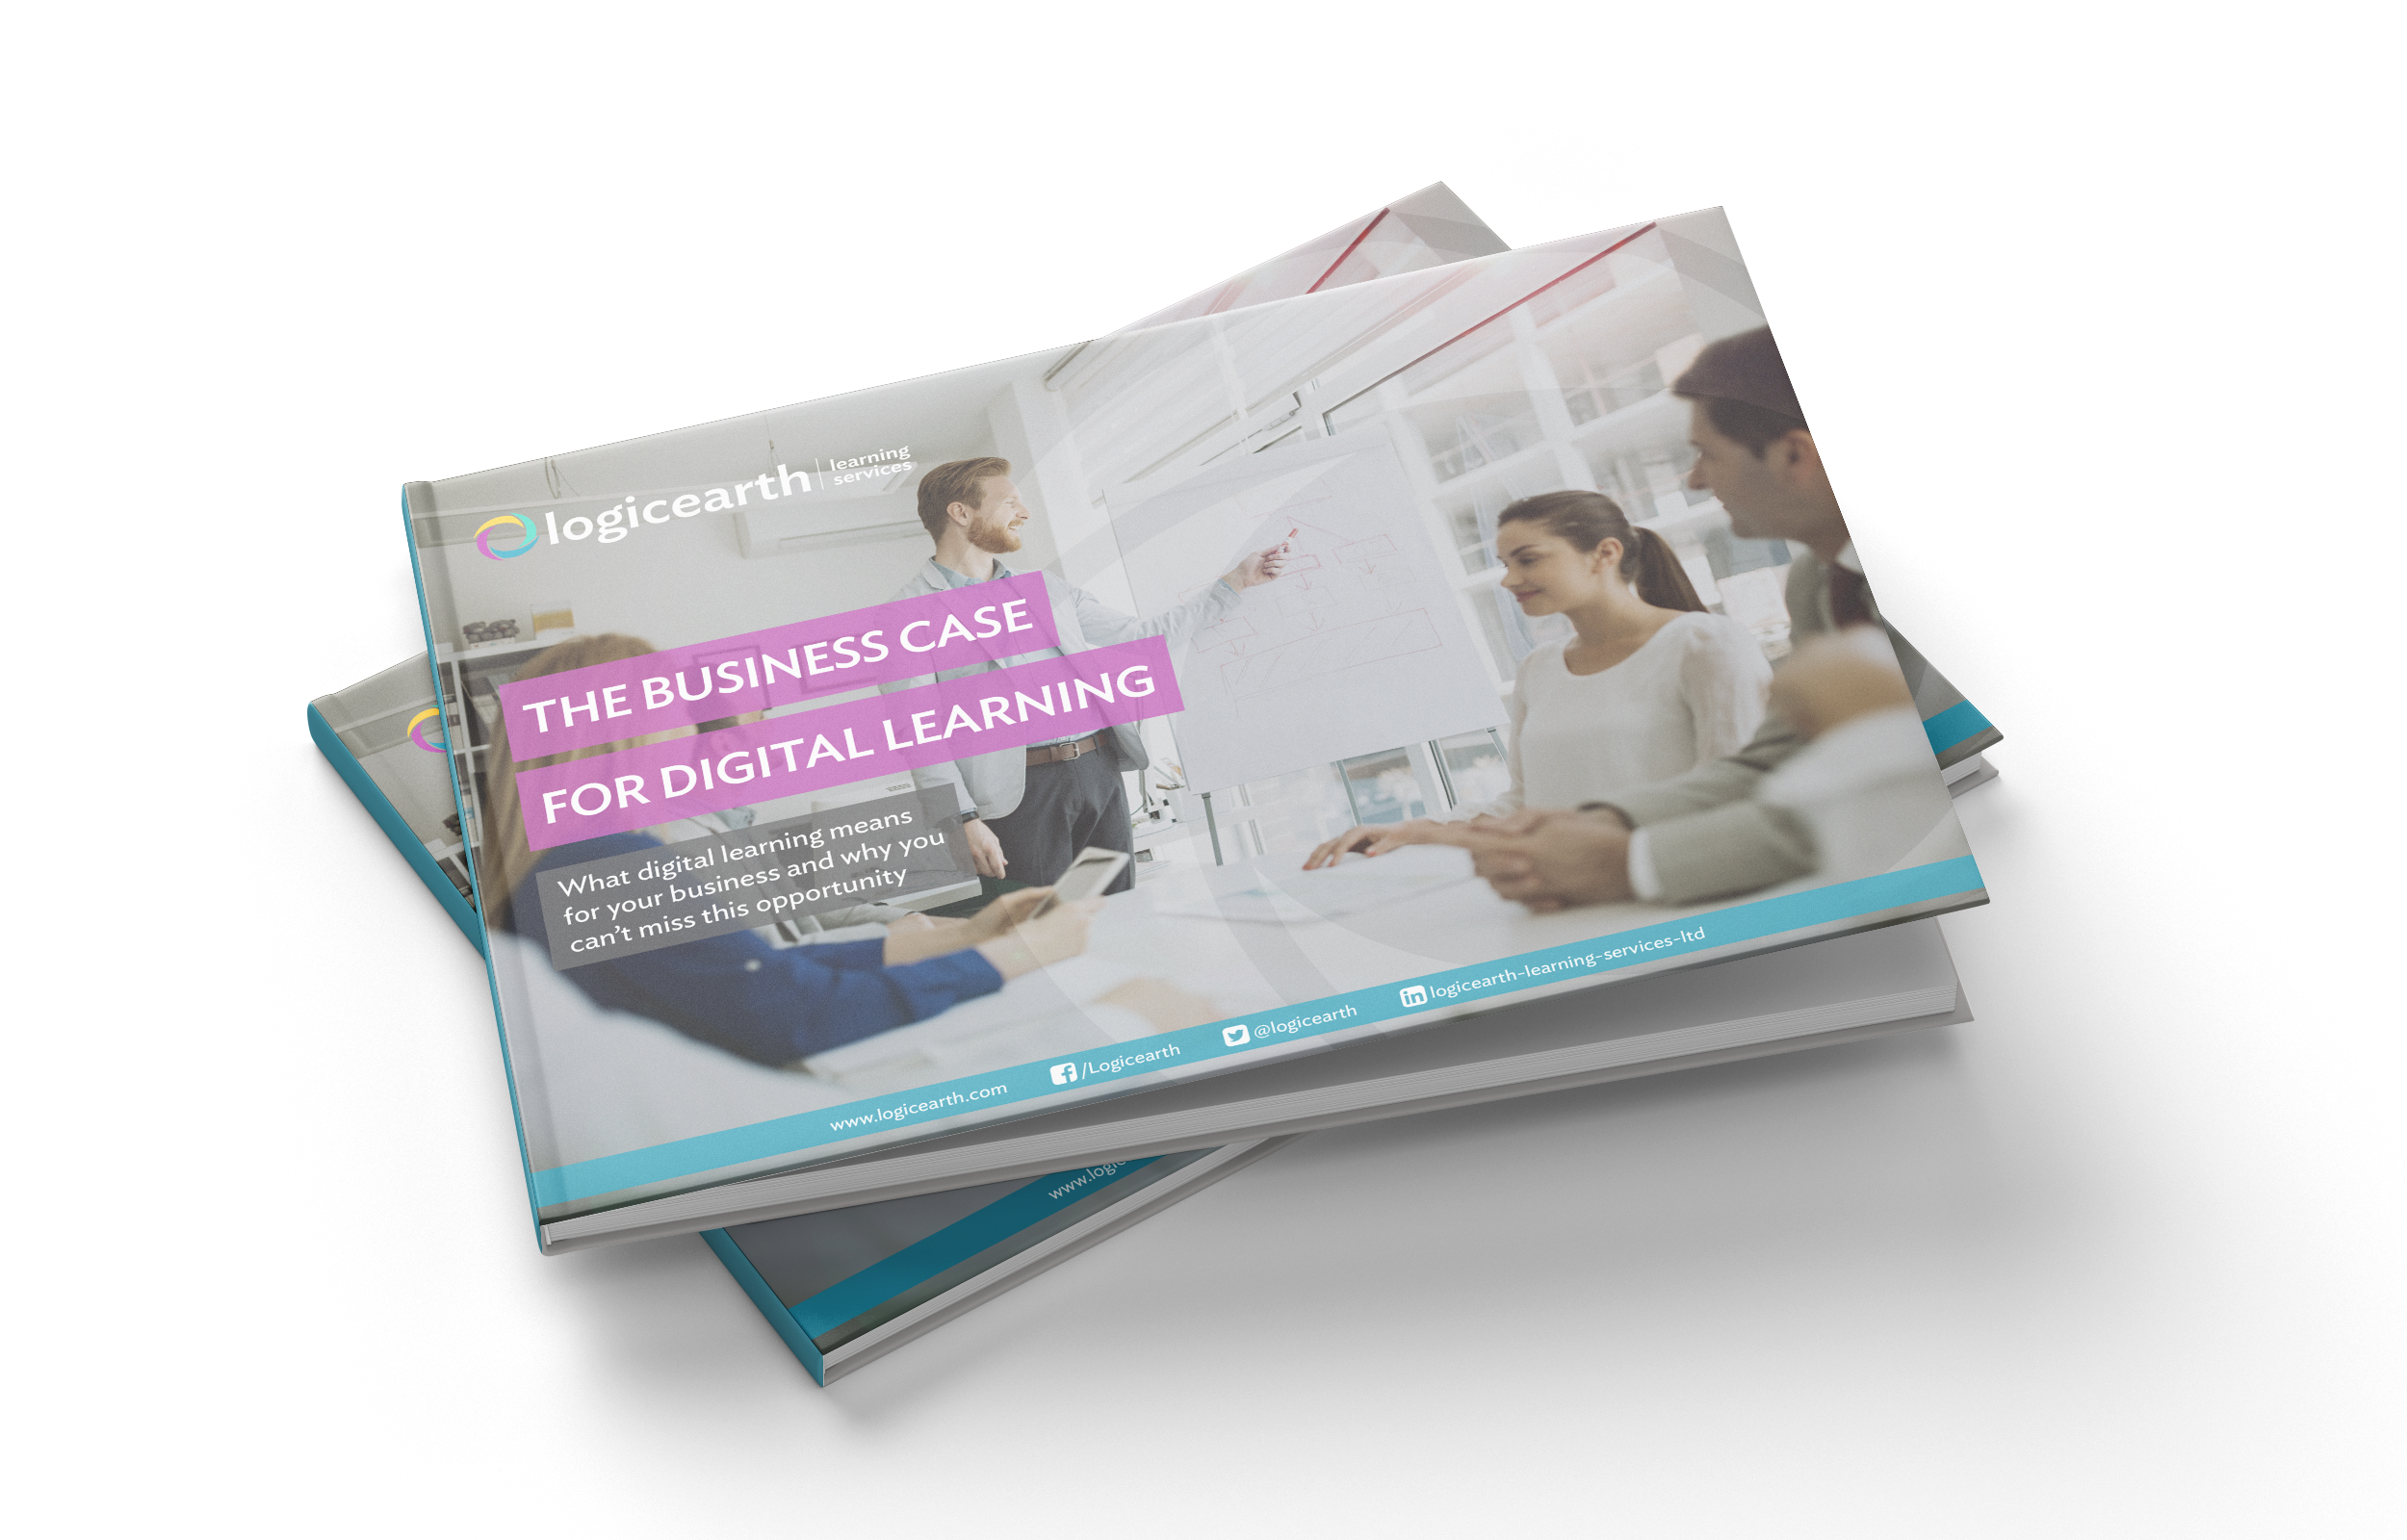 the-business-case-for-digital-learning.png